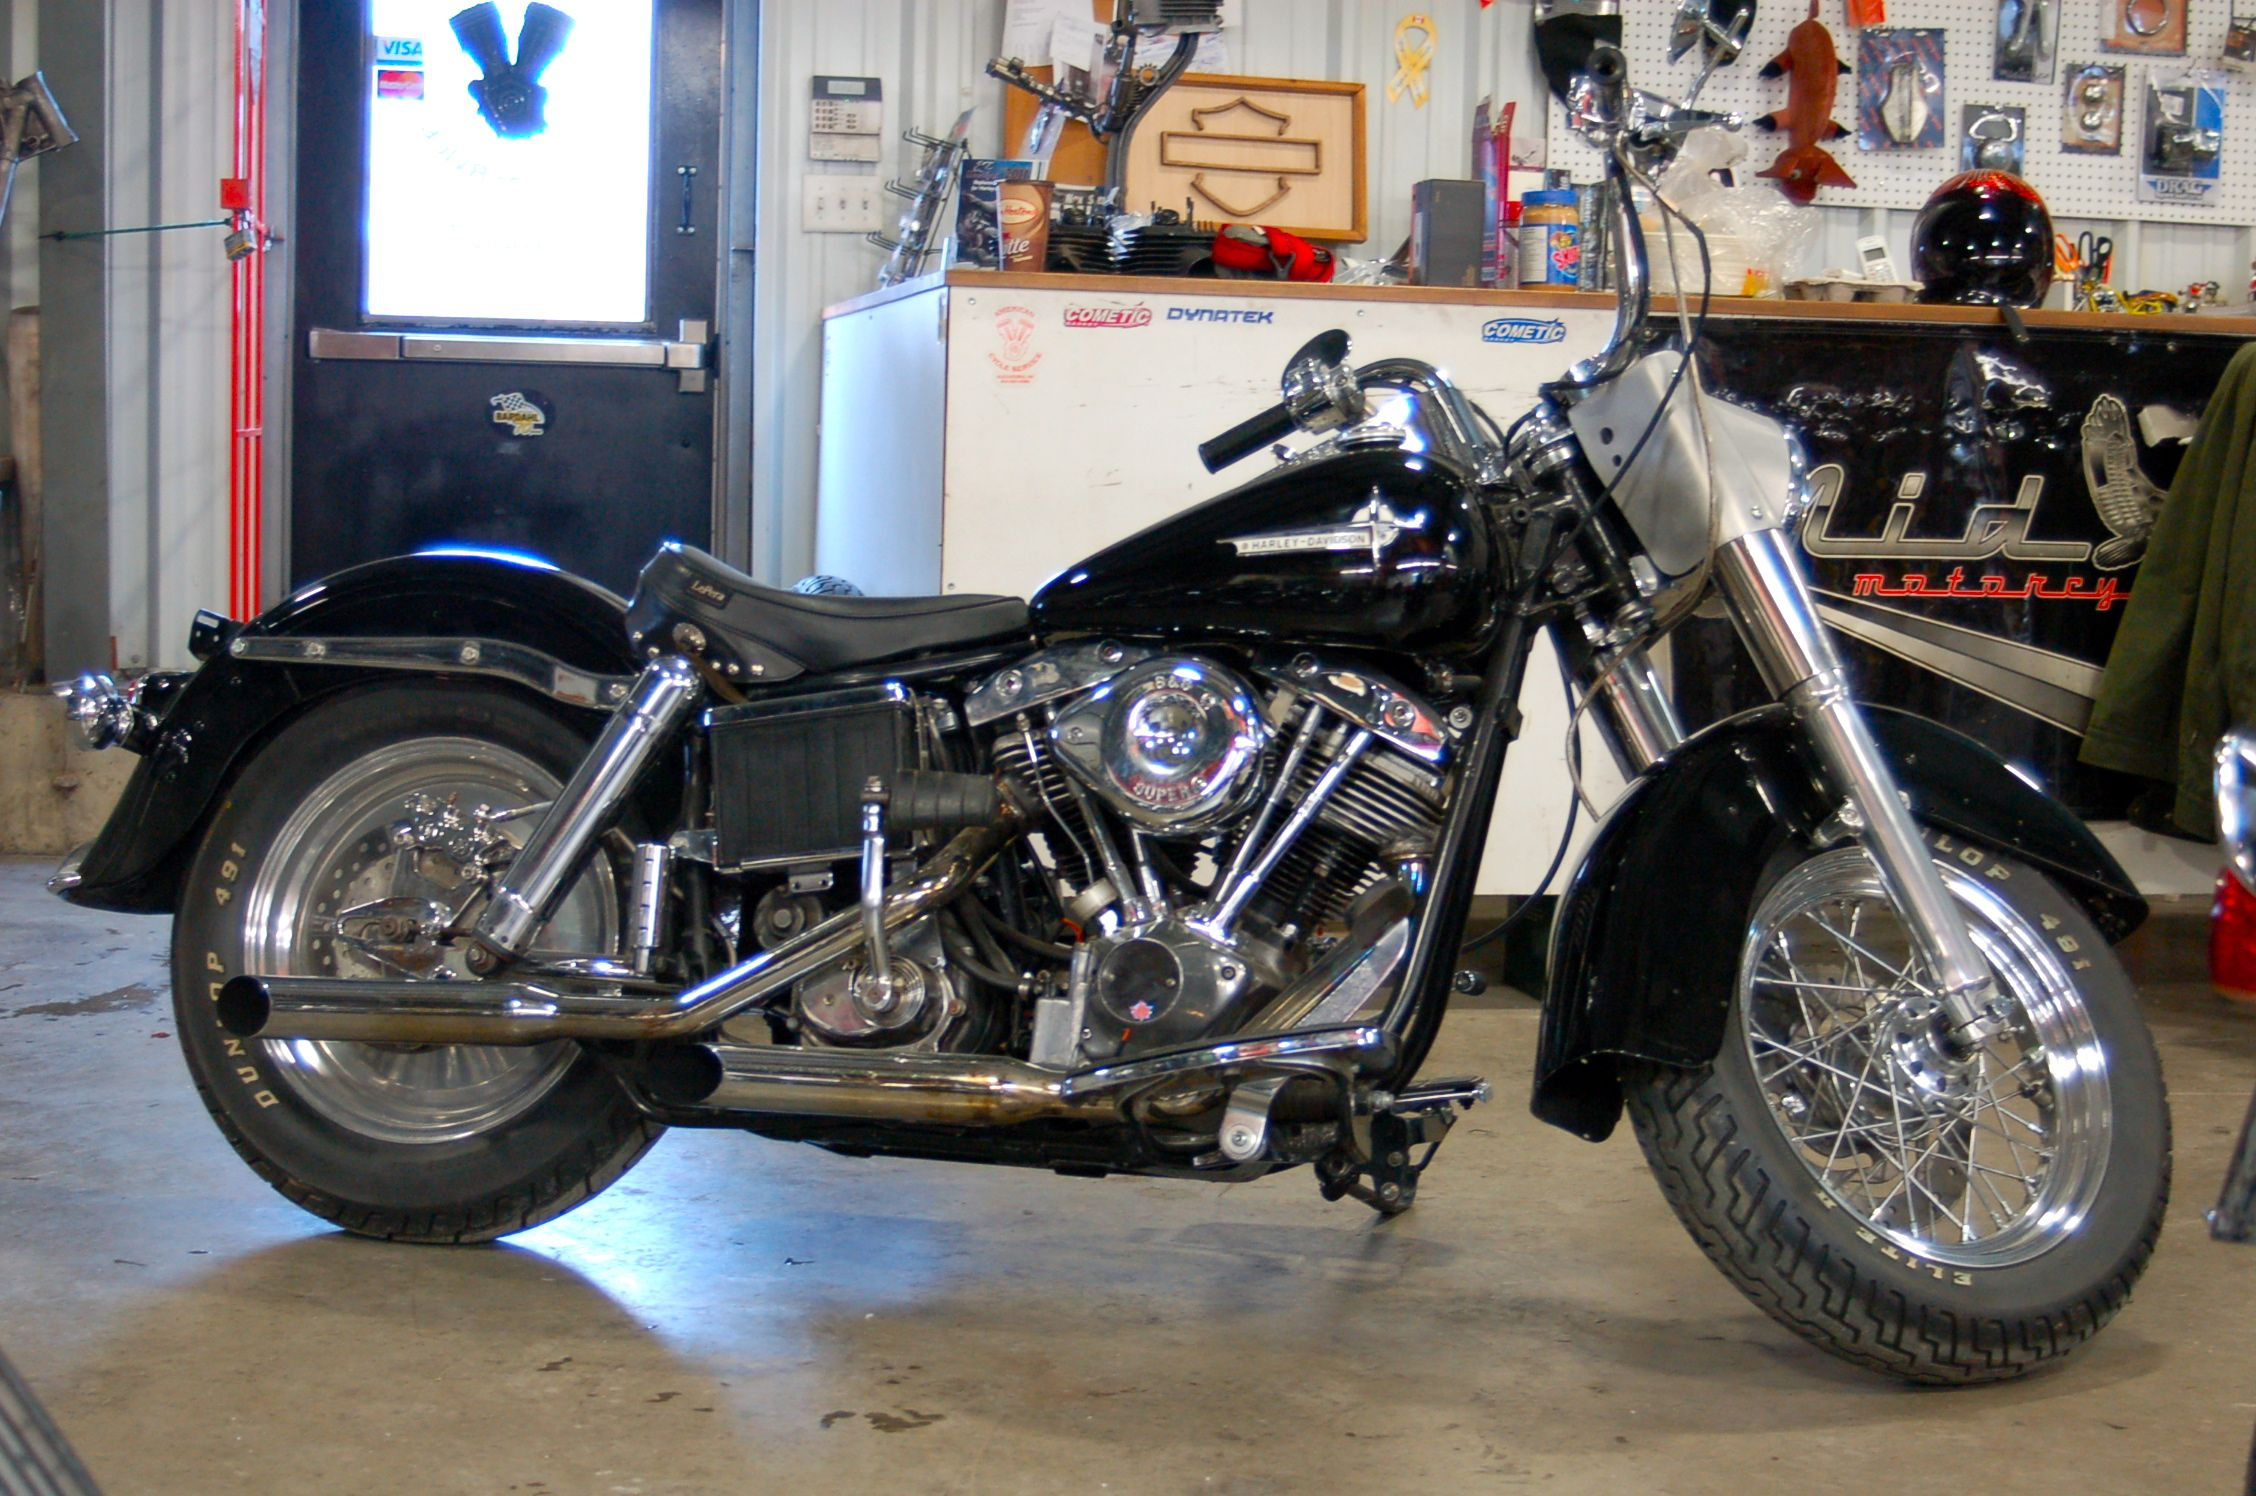 American Cycle Service: Tasty shovelhead - for sale $4500 SOLD